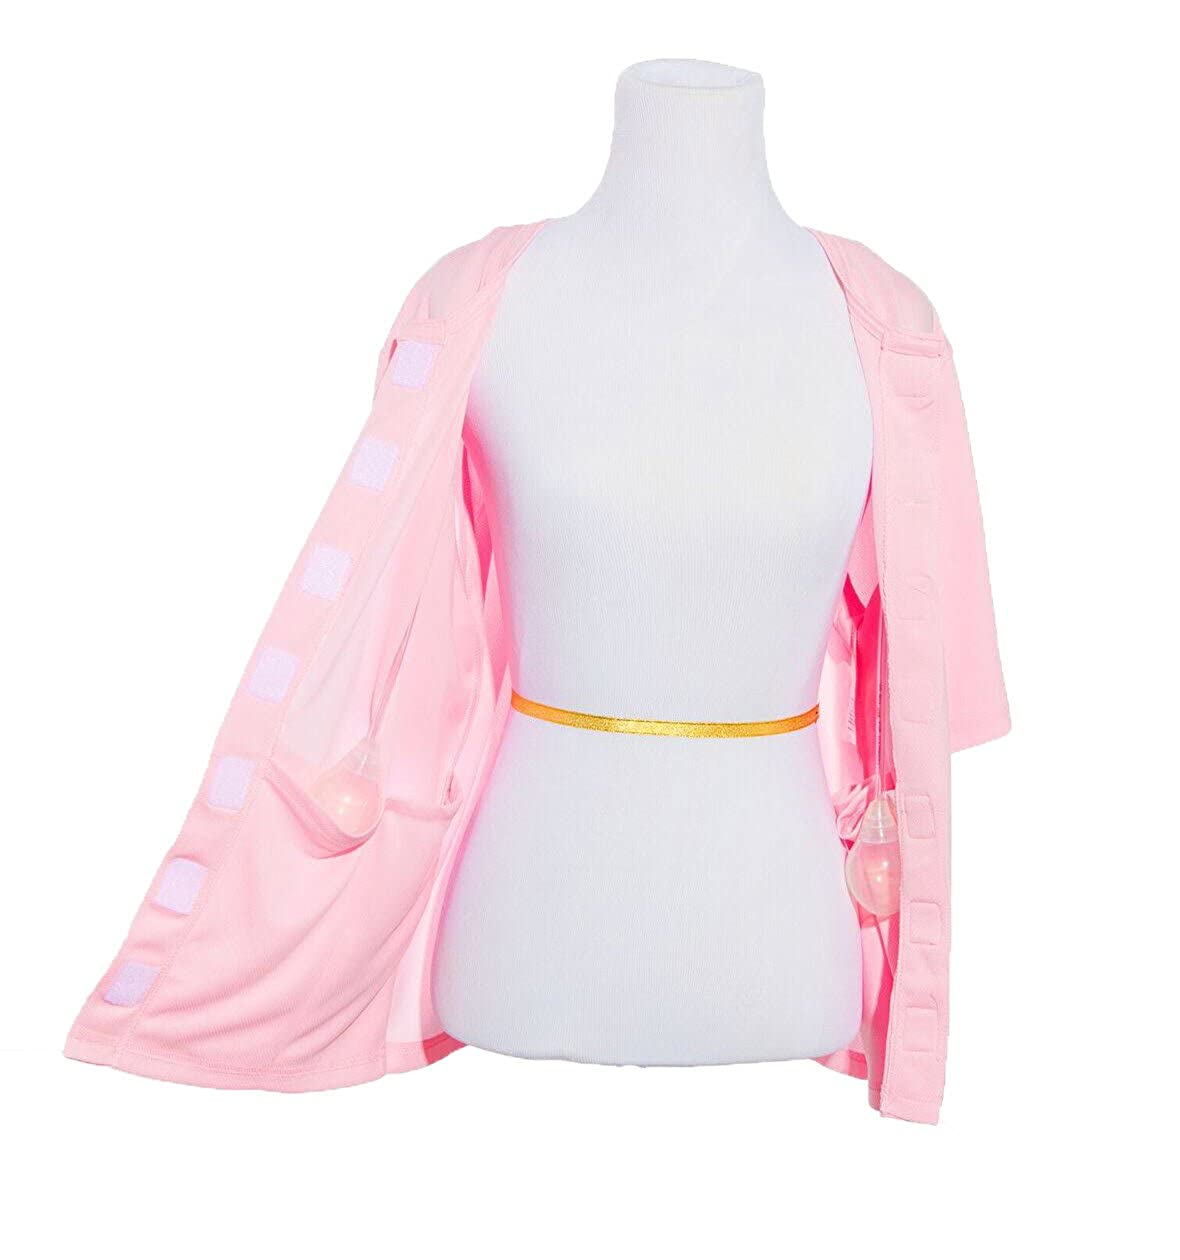 Rehab Shirt Mastectomy Breast Augmentation Reconstruction Physical Therapy